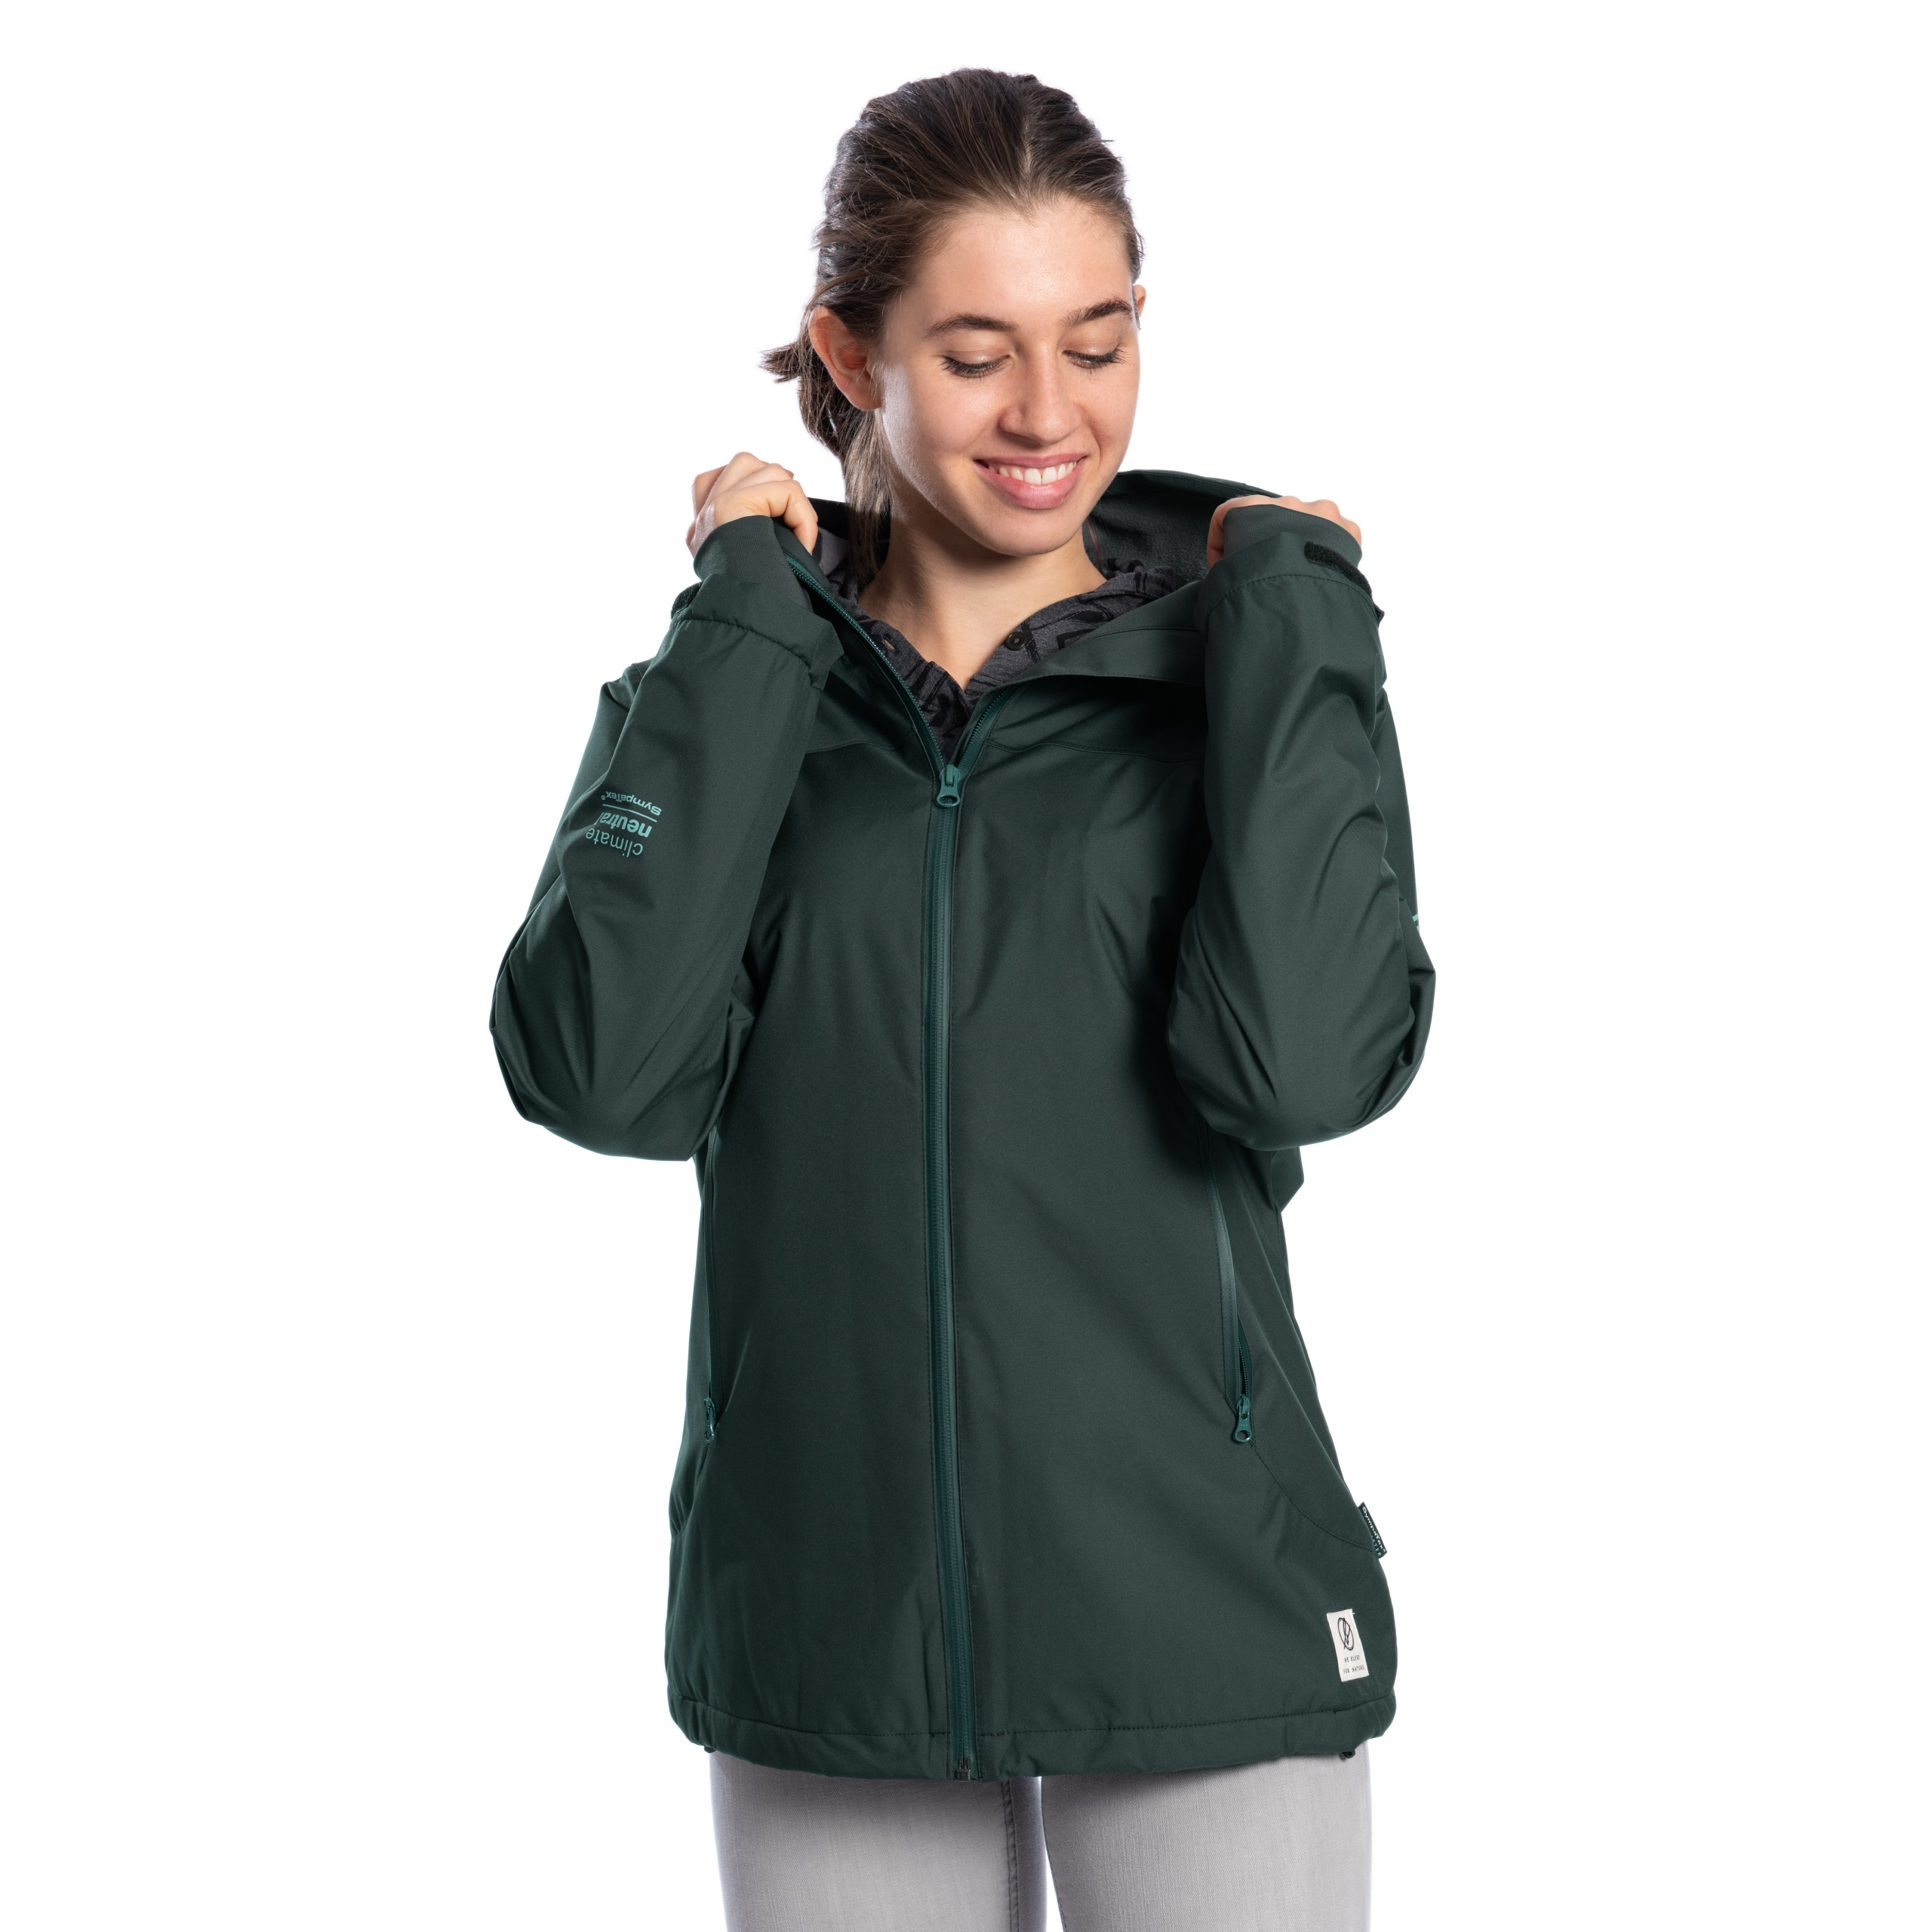 BLEED SYMPATEX® Thermal Jacke Damen Dunkelgrün –